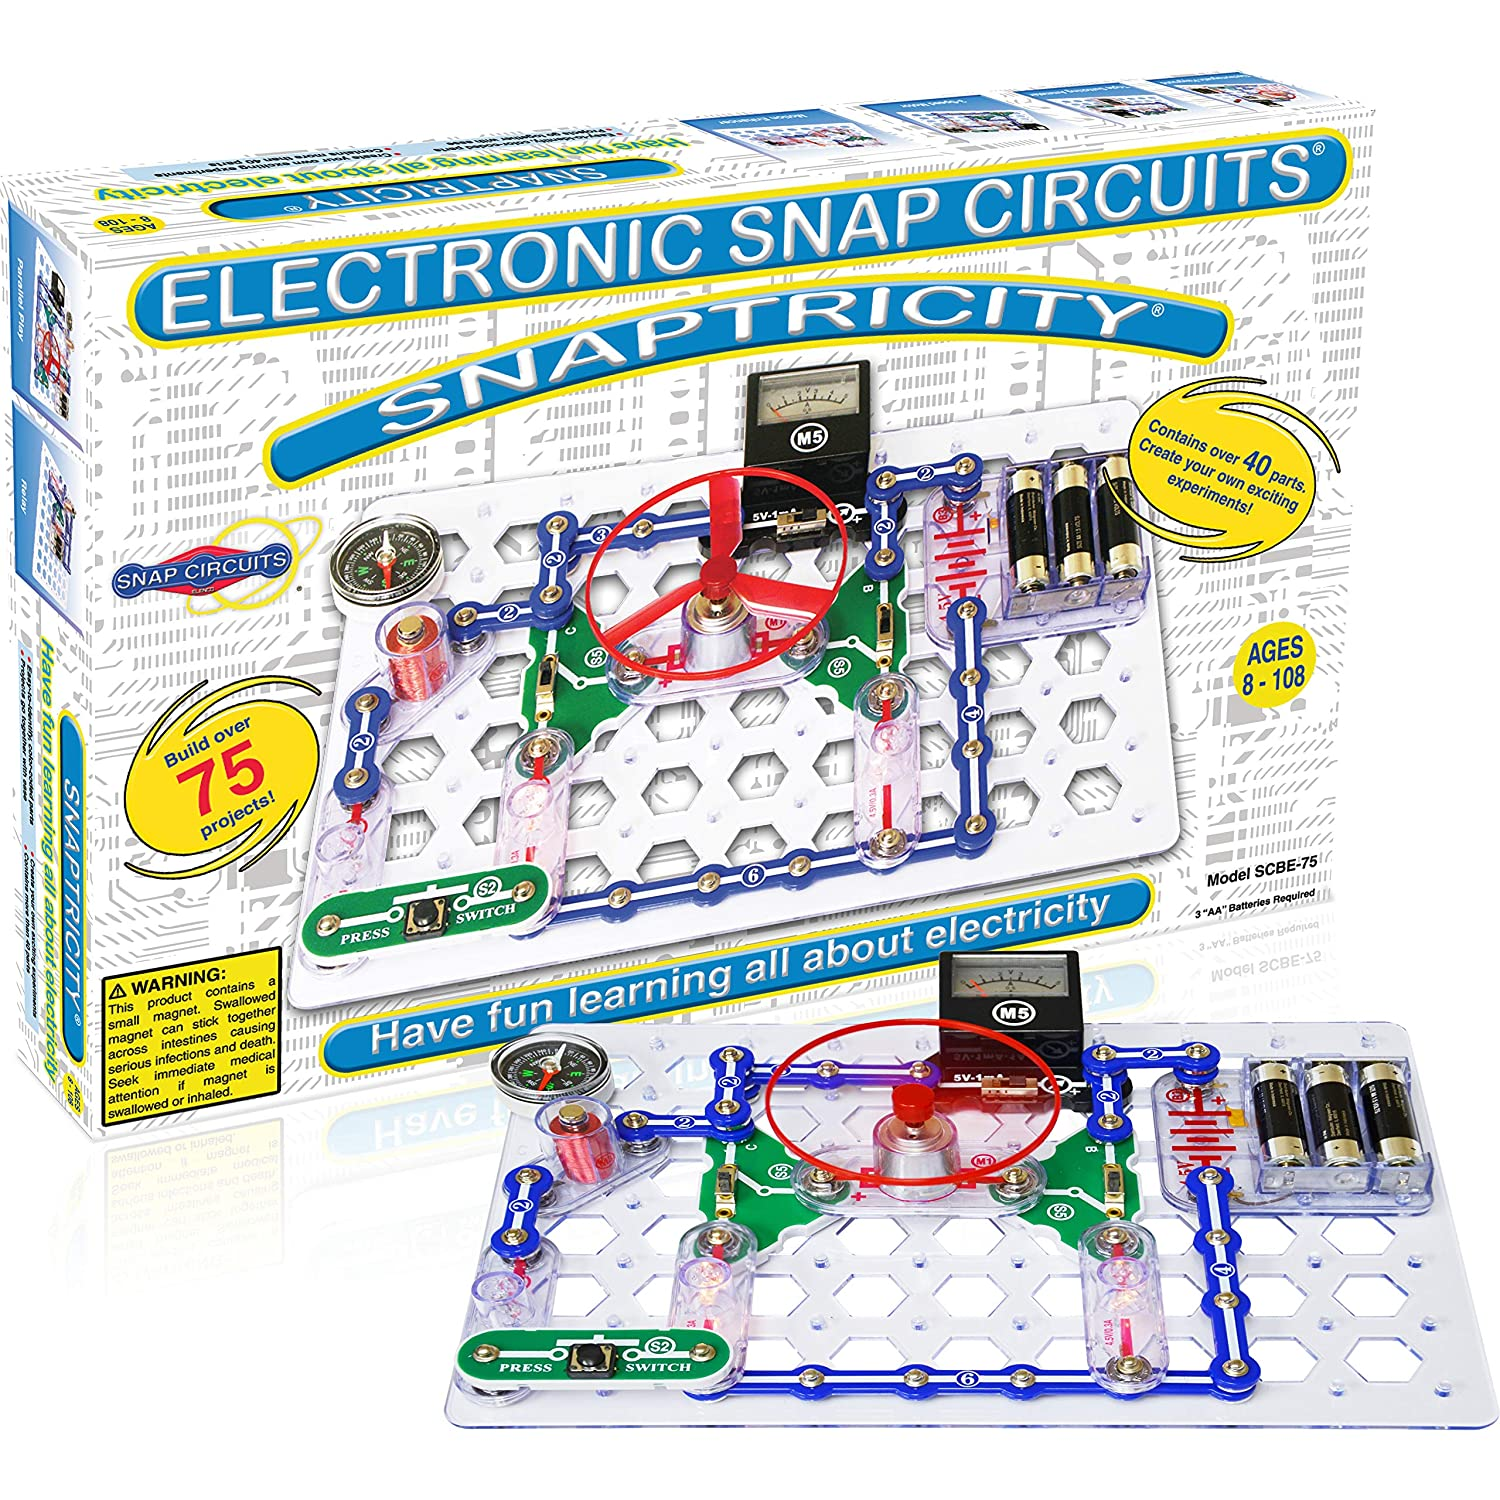 Making A Circuit With Circuit Construction Kit